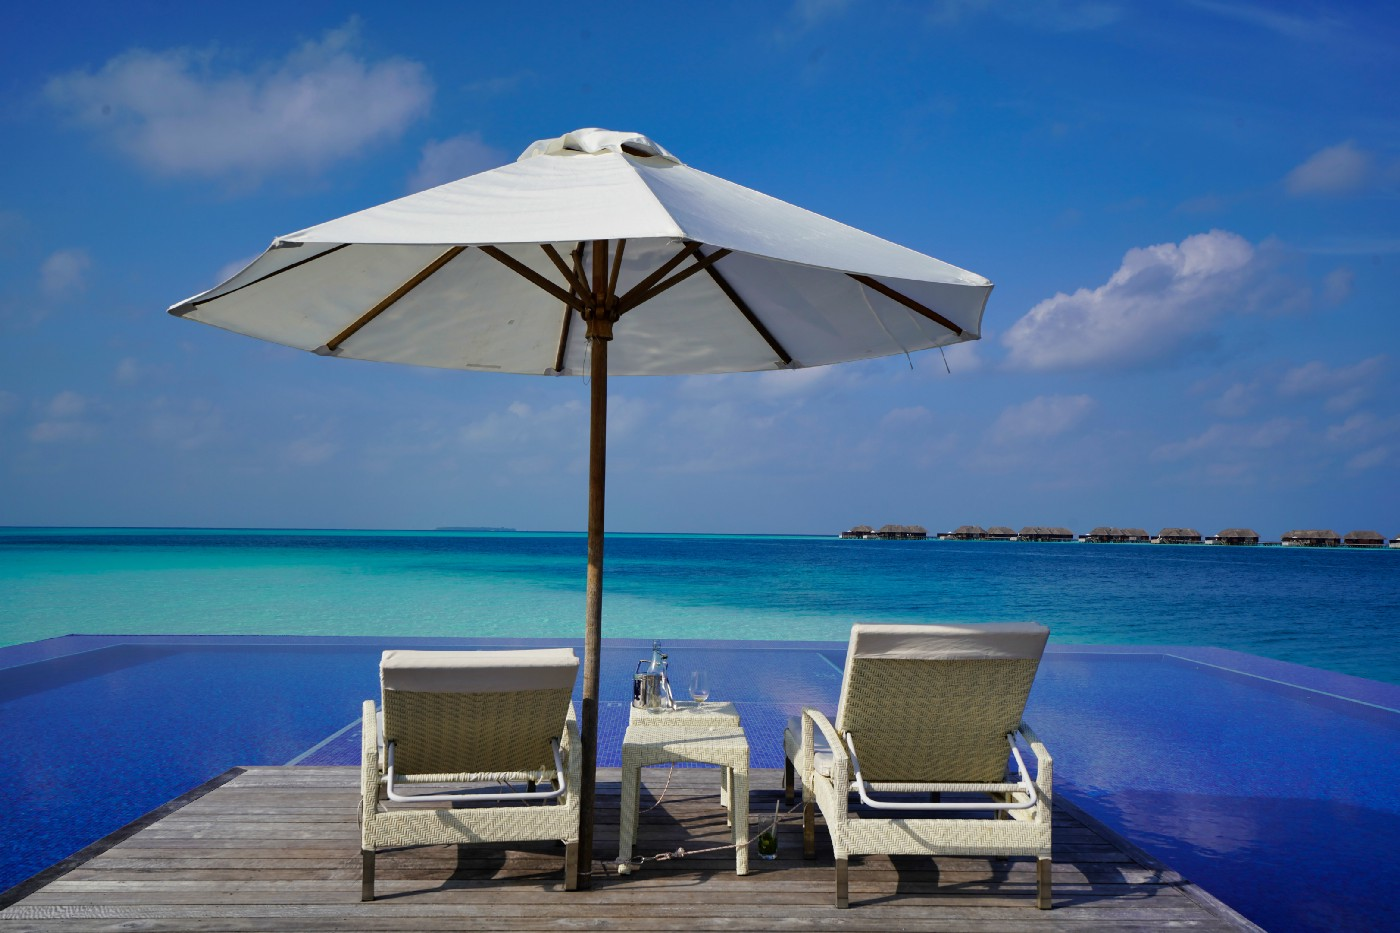 Two beach loungers on a desk, under a big white umbrella overlooking pristine blue waters.